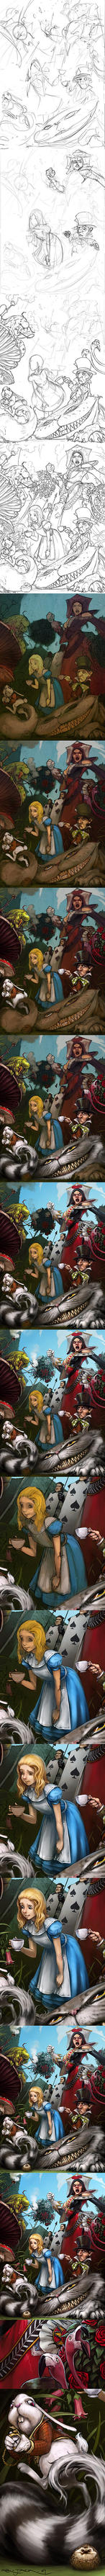 Alice in Wonderland Process by Mr--Jack